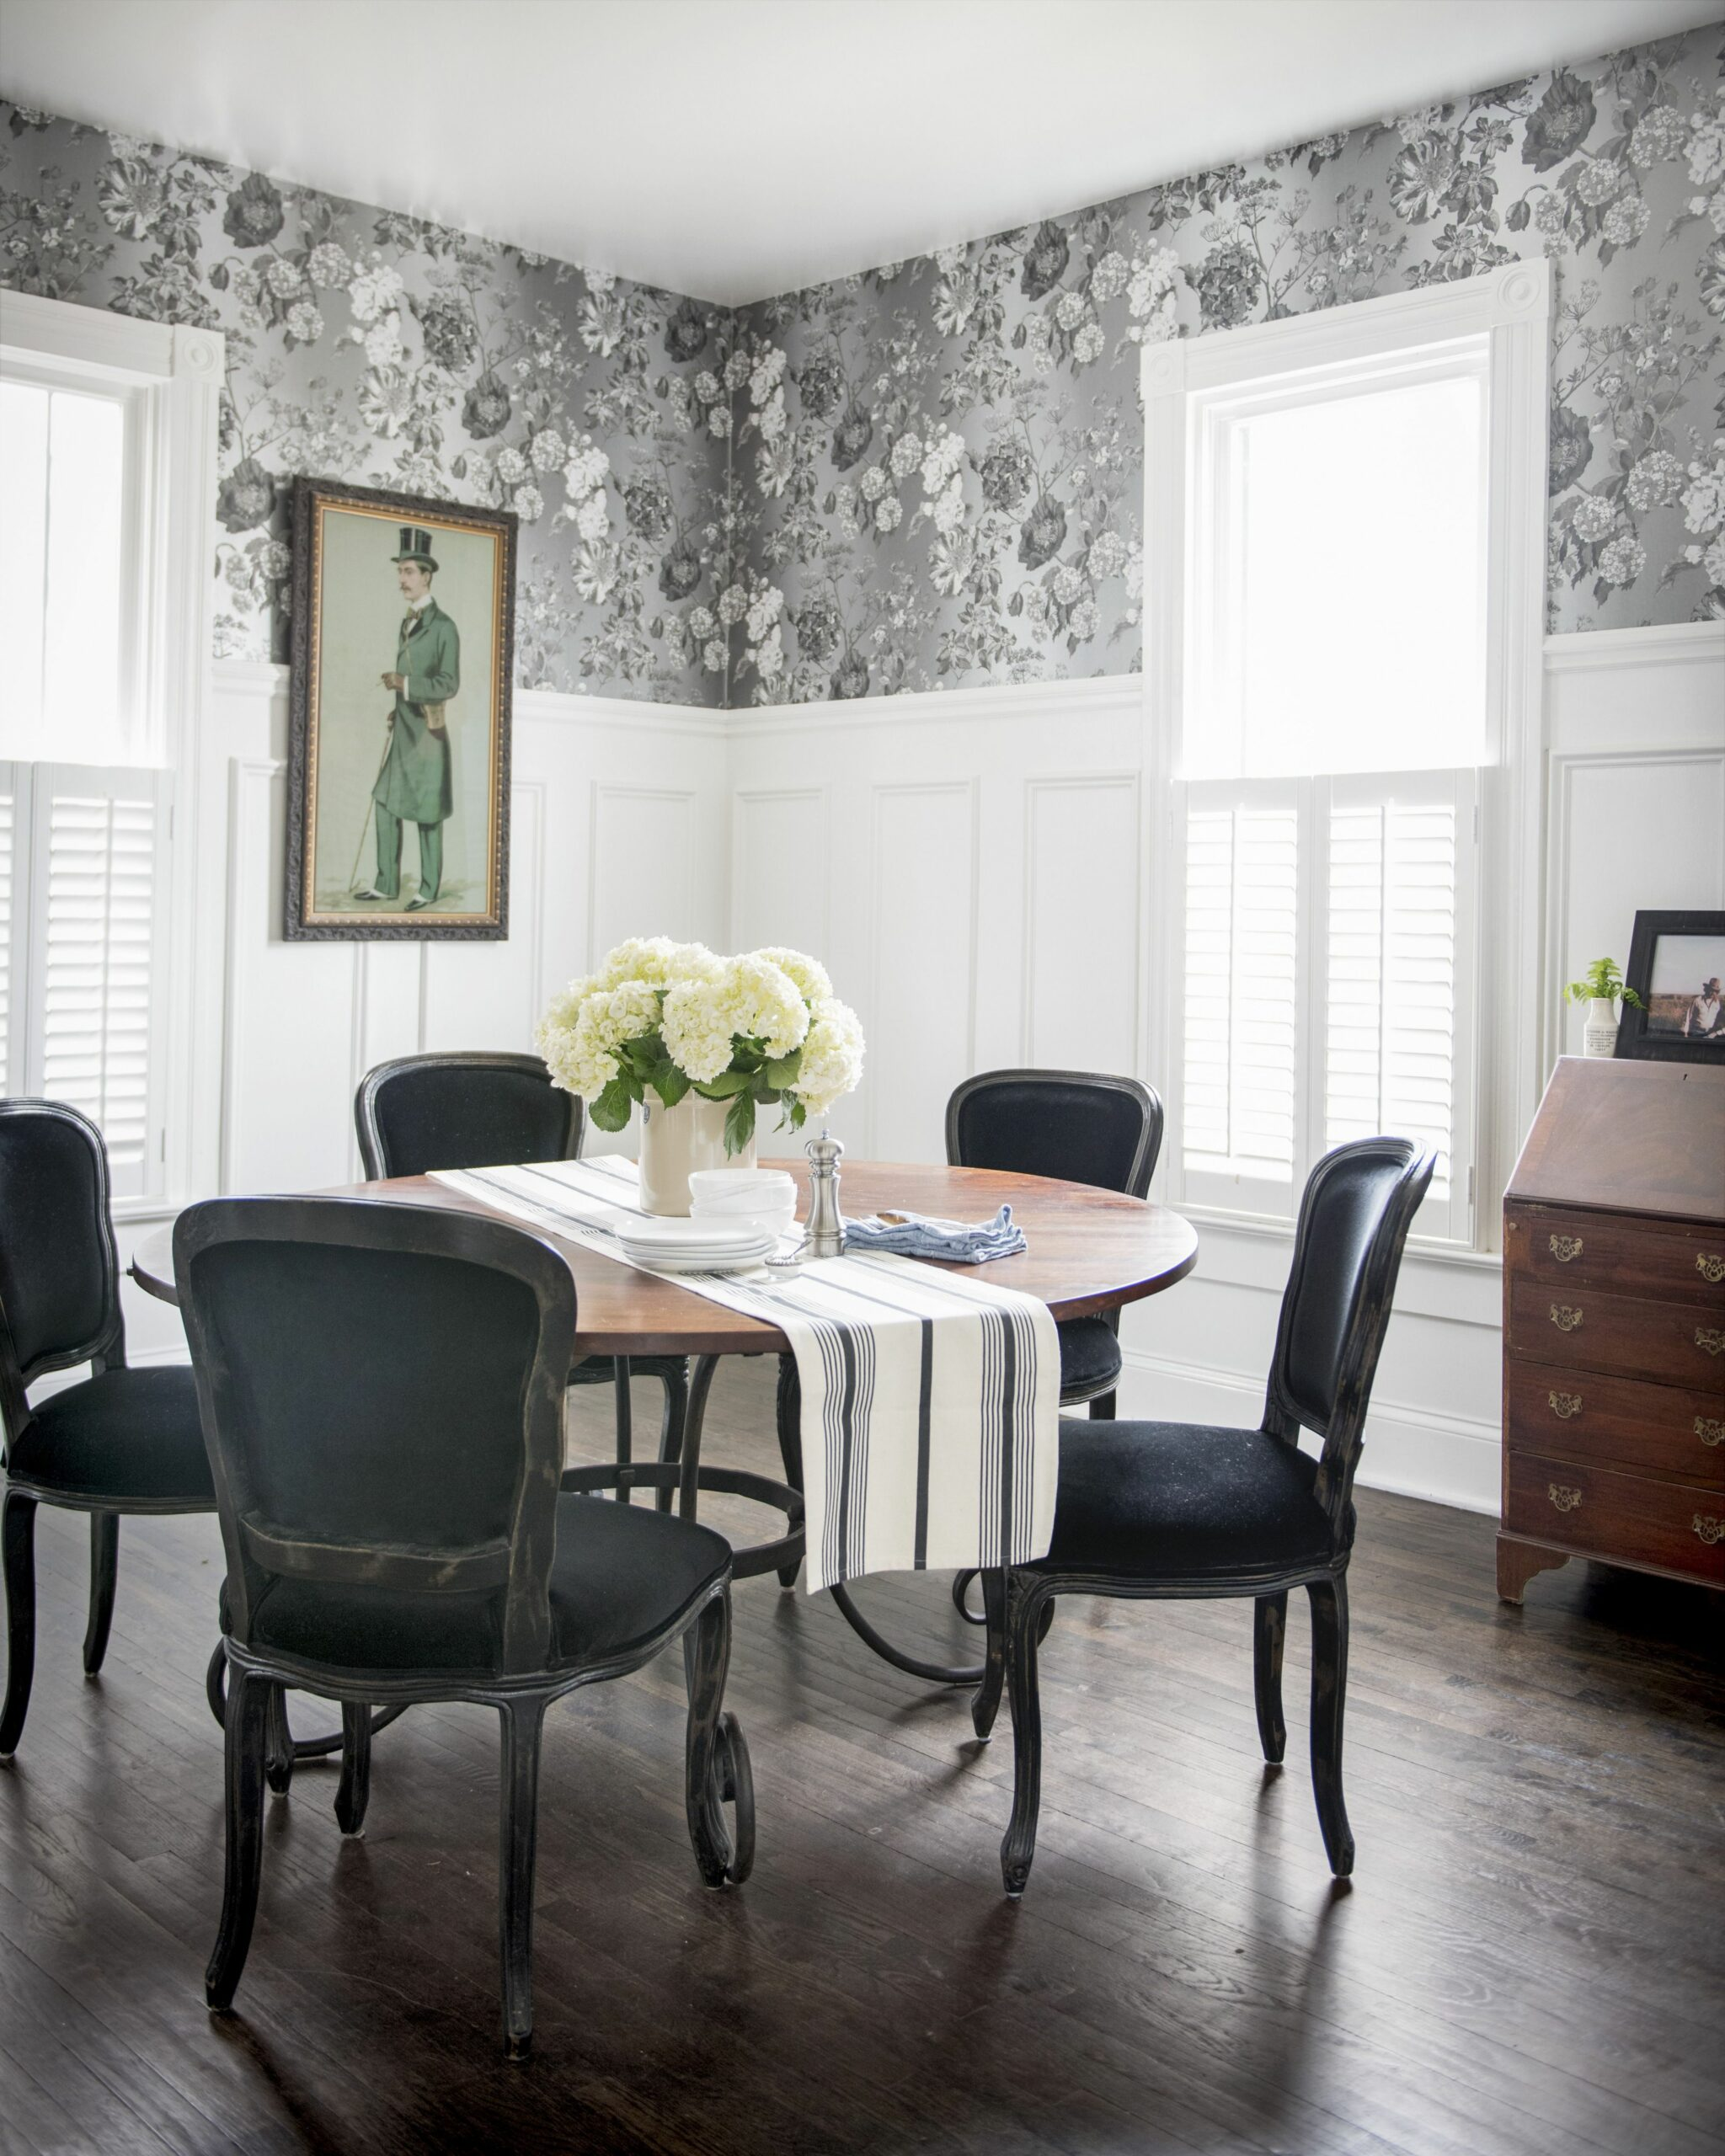 12 Best Dining Room Decorating Ideas - Pictures of Dining Room Decor - dining room gift ideas